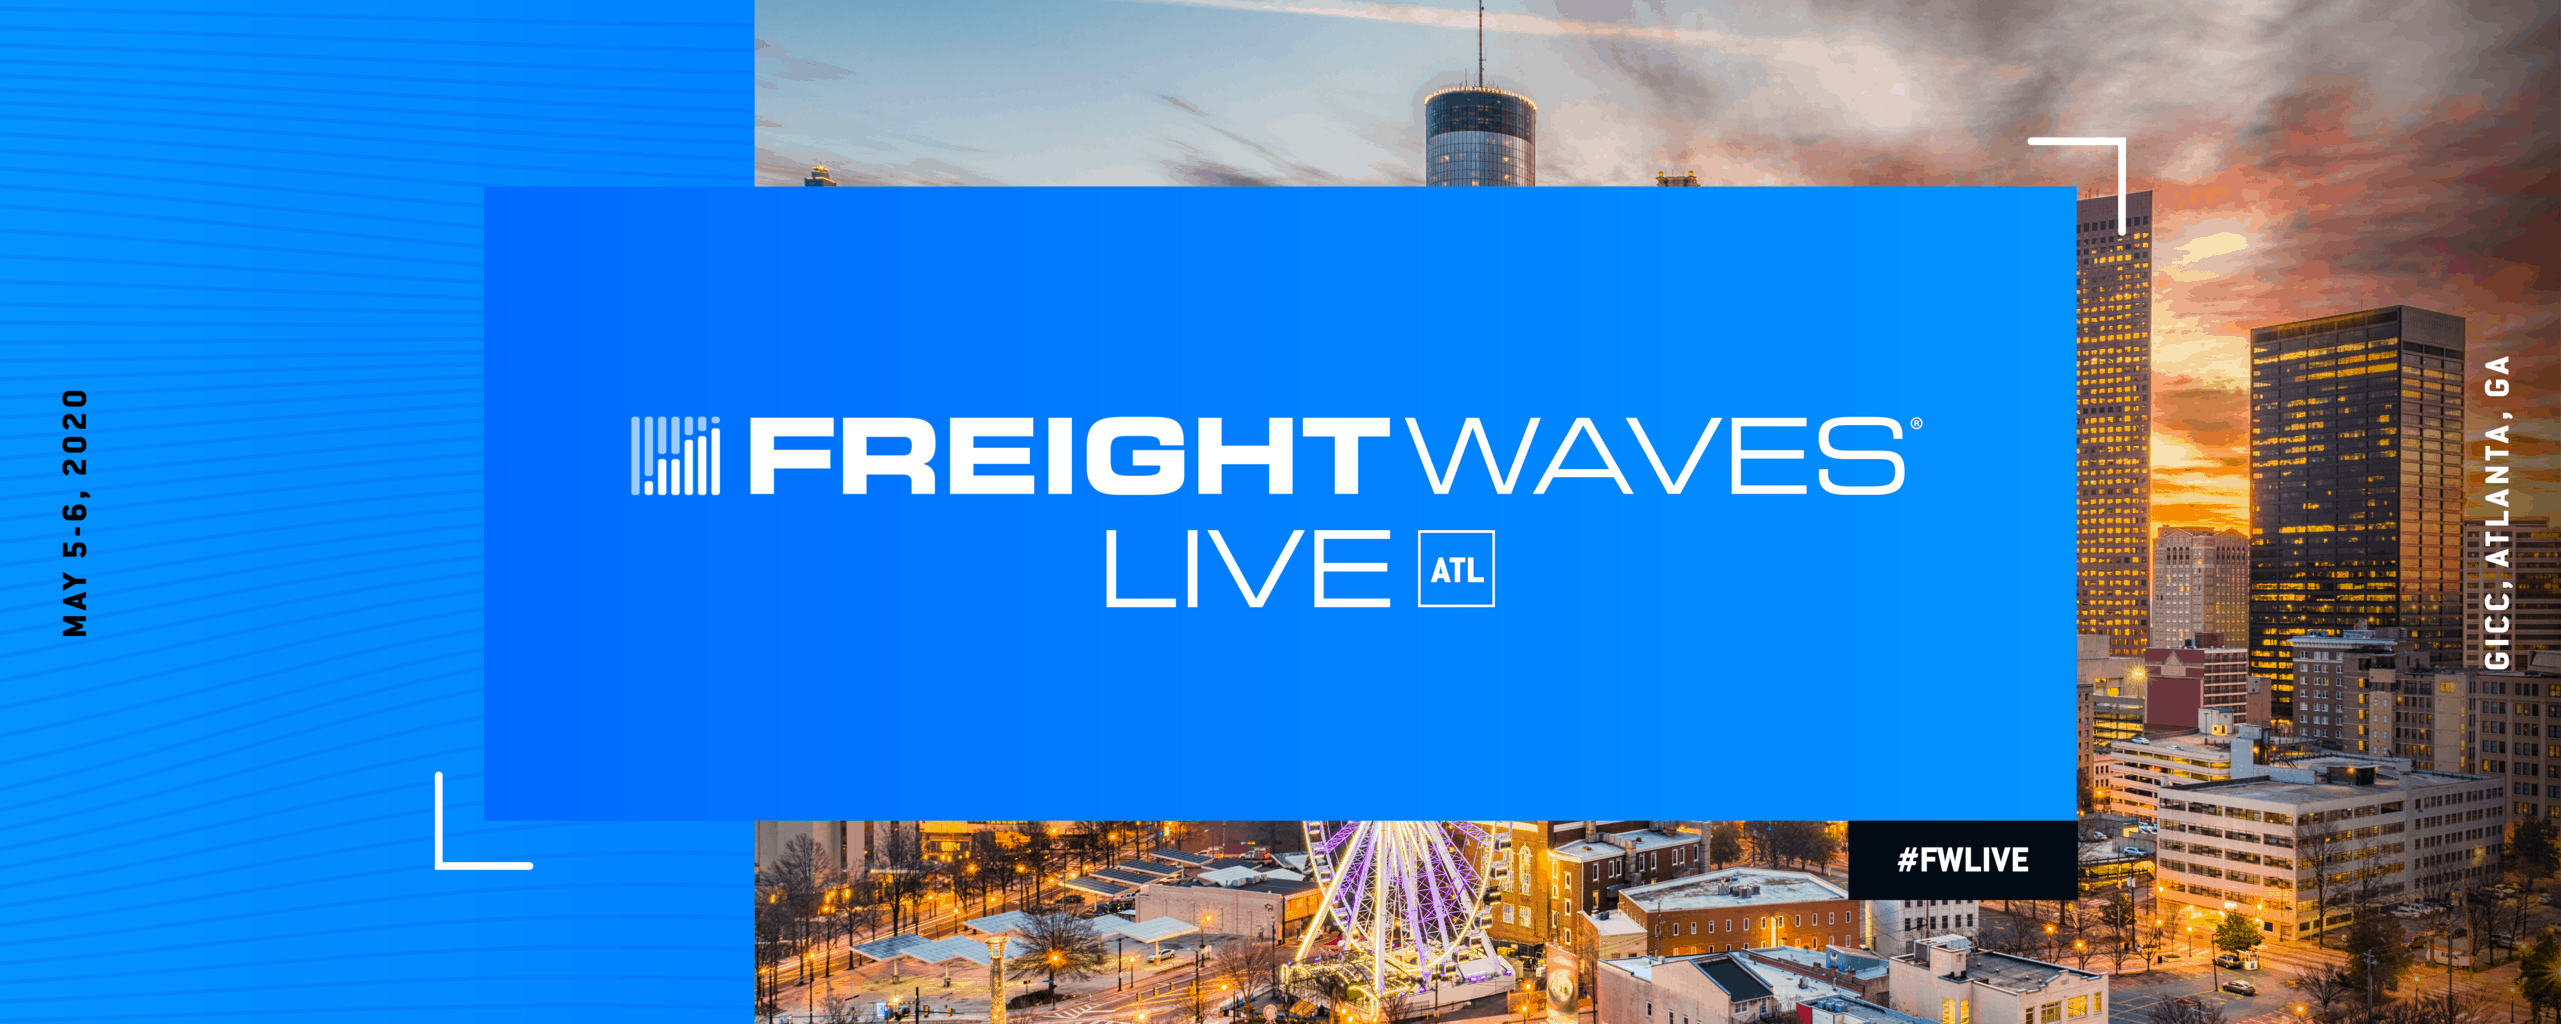 Atlanta Events 2020.Freightwaves Live Atl The Freight Tech Conference Of The